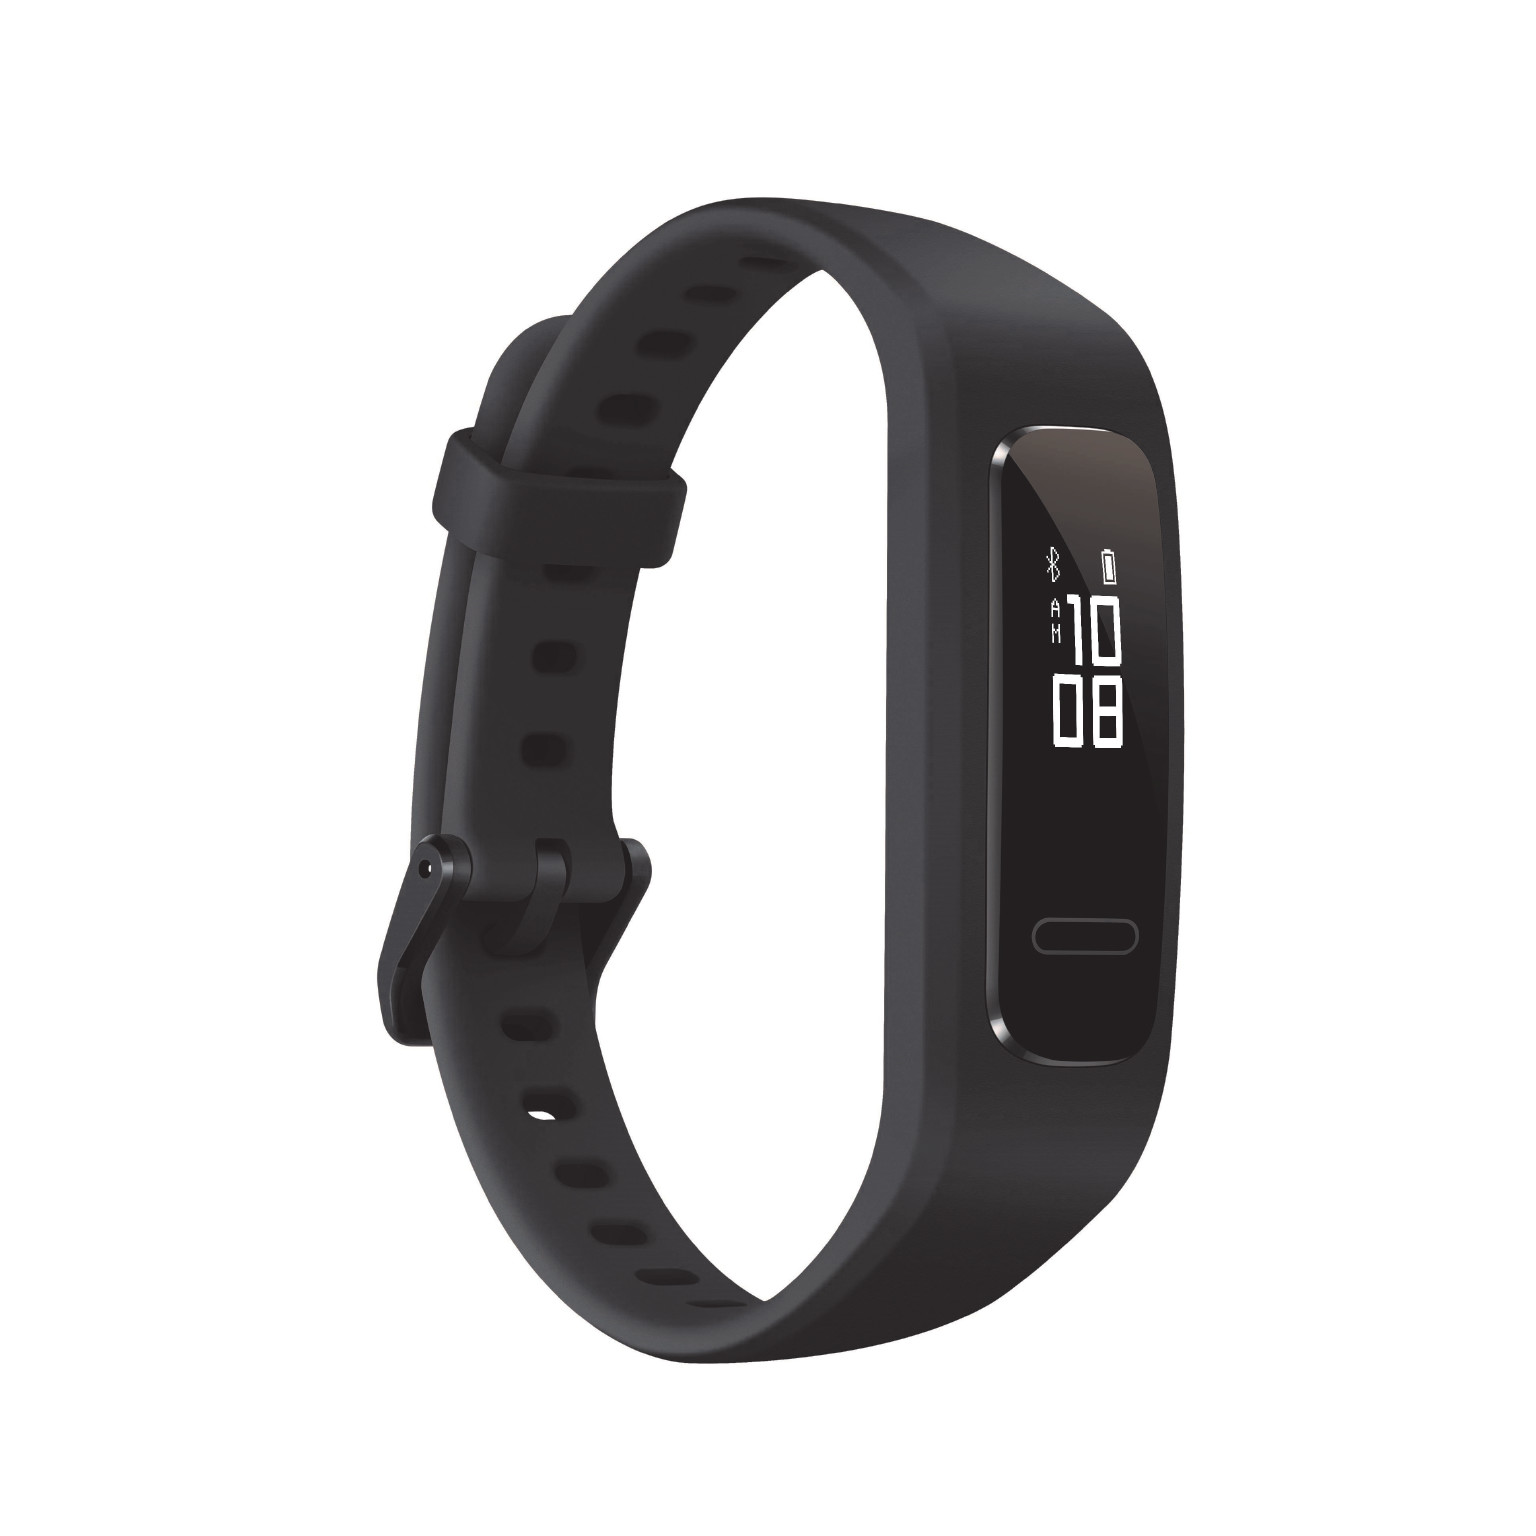 Image for HUAWEI AW70-B29 Band 3e Smart Fitness Activity Tracker, from Circuit City